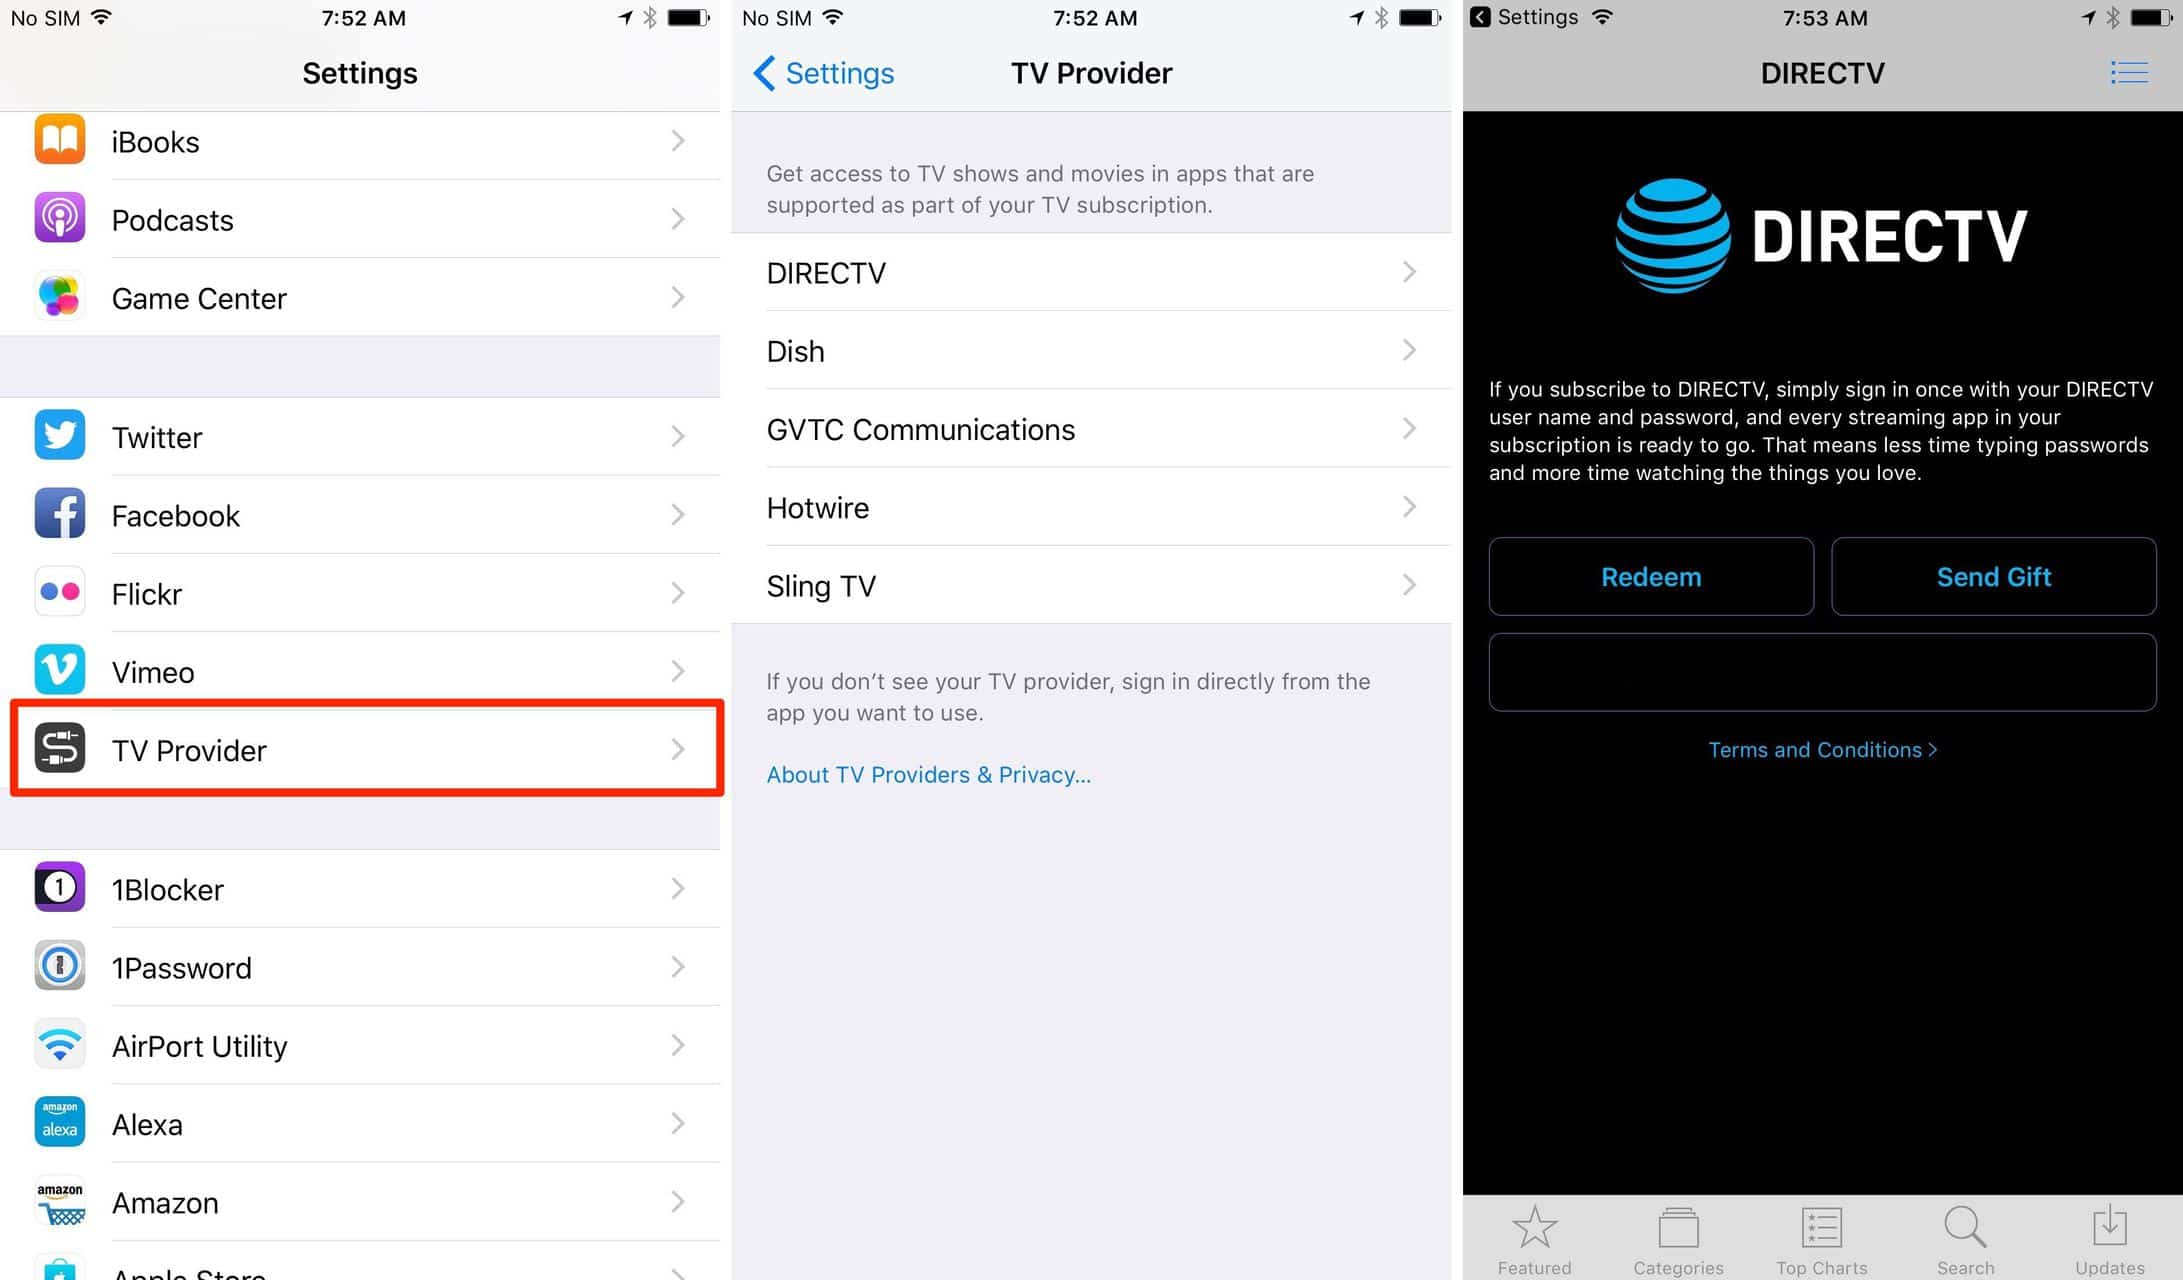 enable Single Sign-On for iPhone or iPad